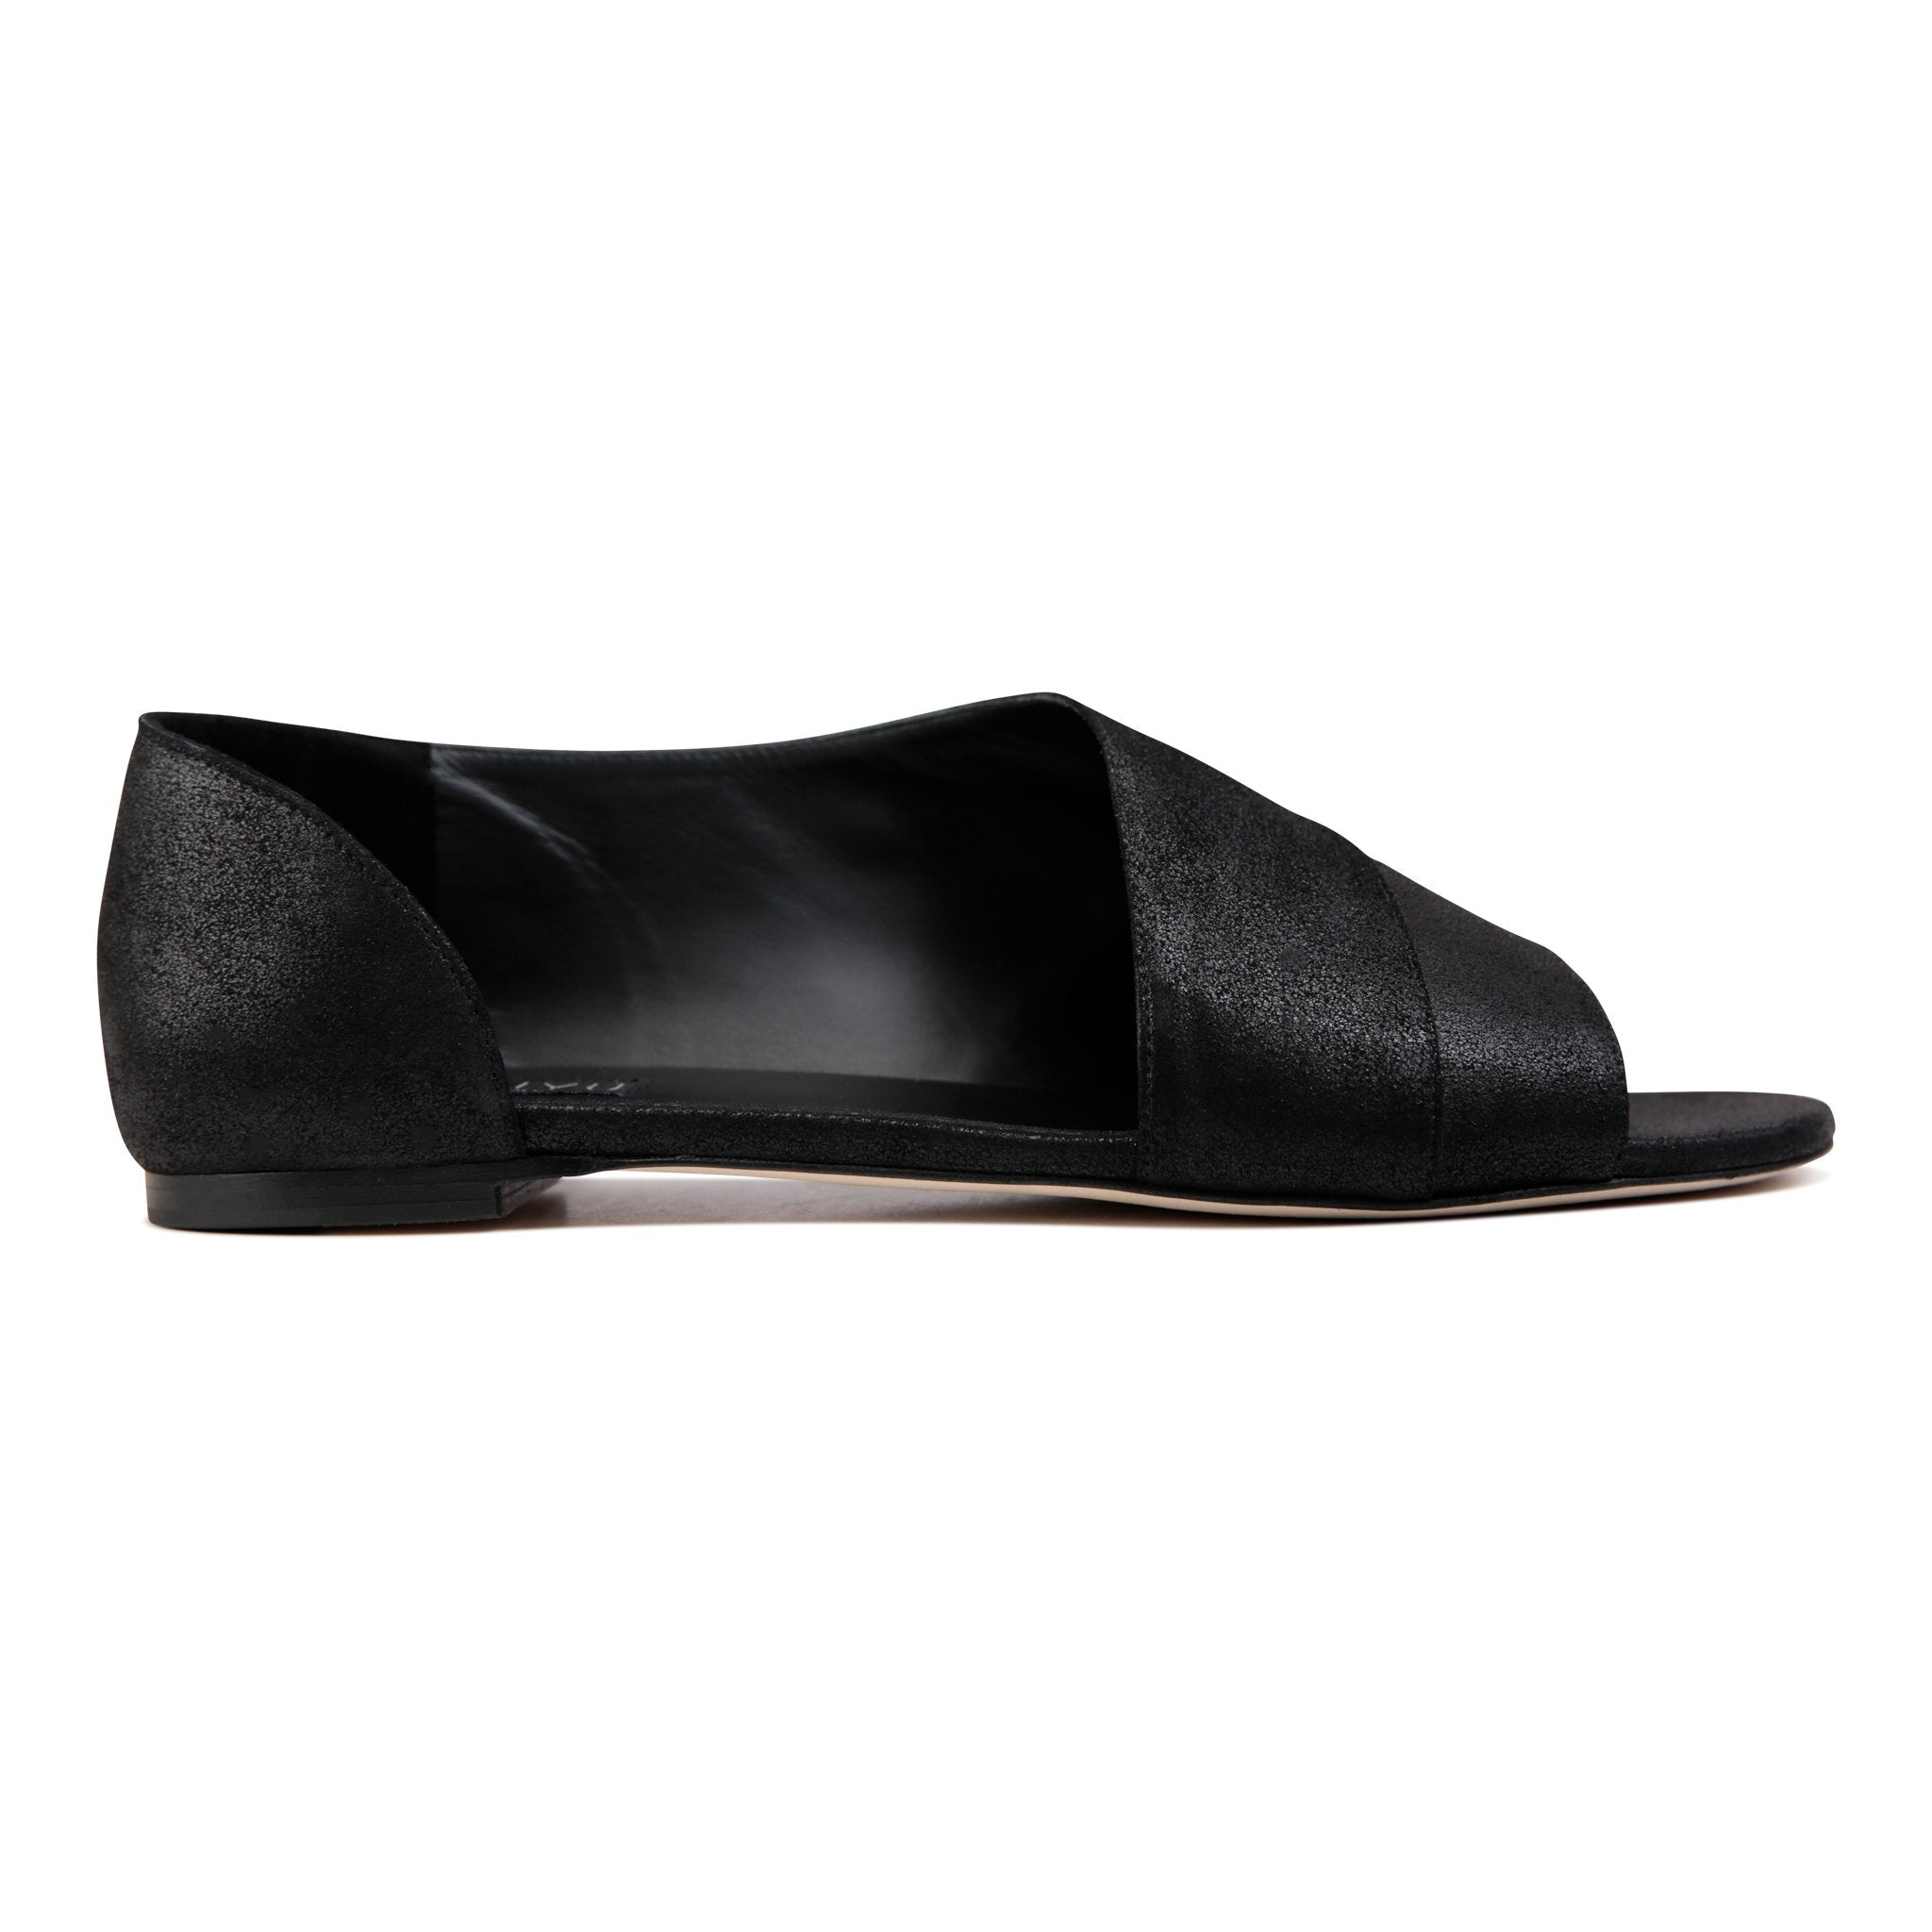 AMALFI - Burma Nero + Velukid, VIAJIYU - Women's Hand Made Sustainable Luxury Shoes. Made in Italy. Made to Order.